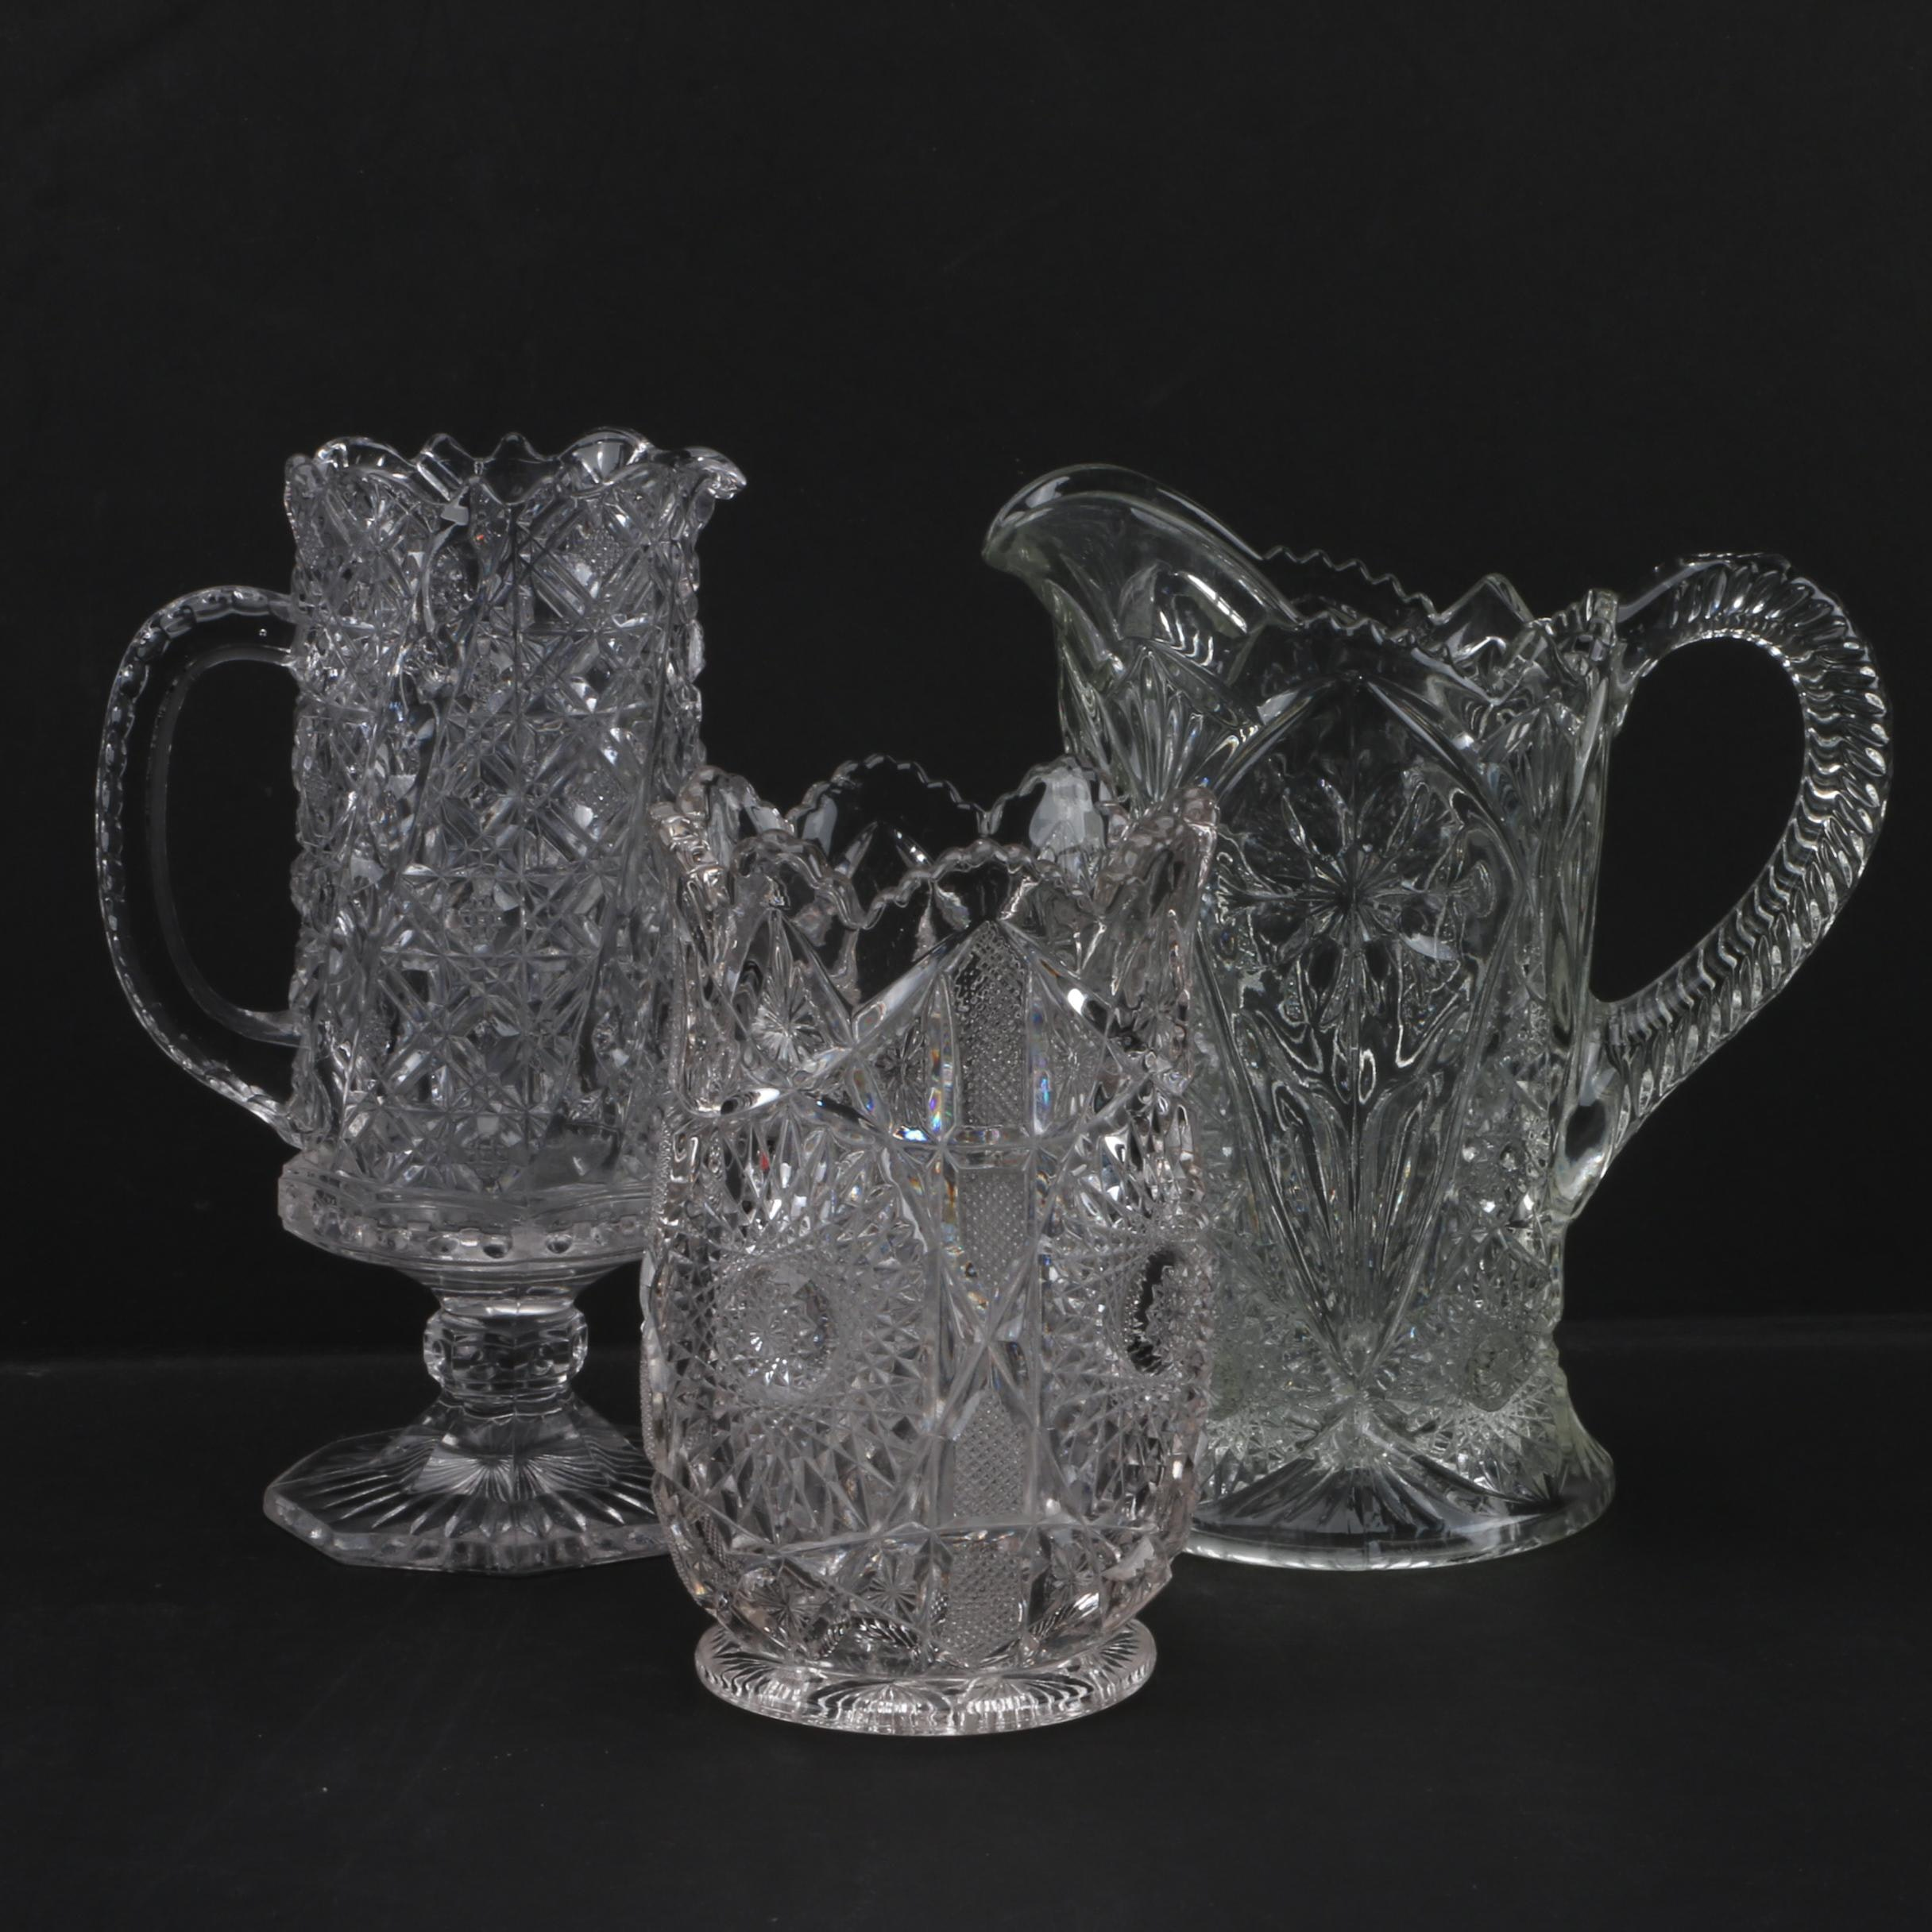 Crystal Pitchers and Vase